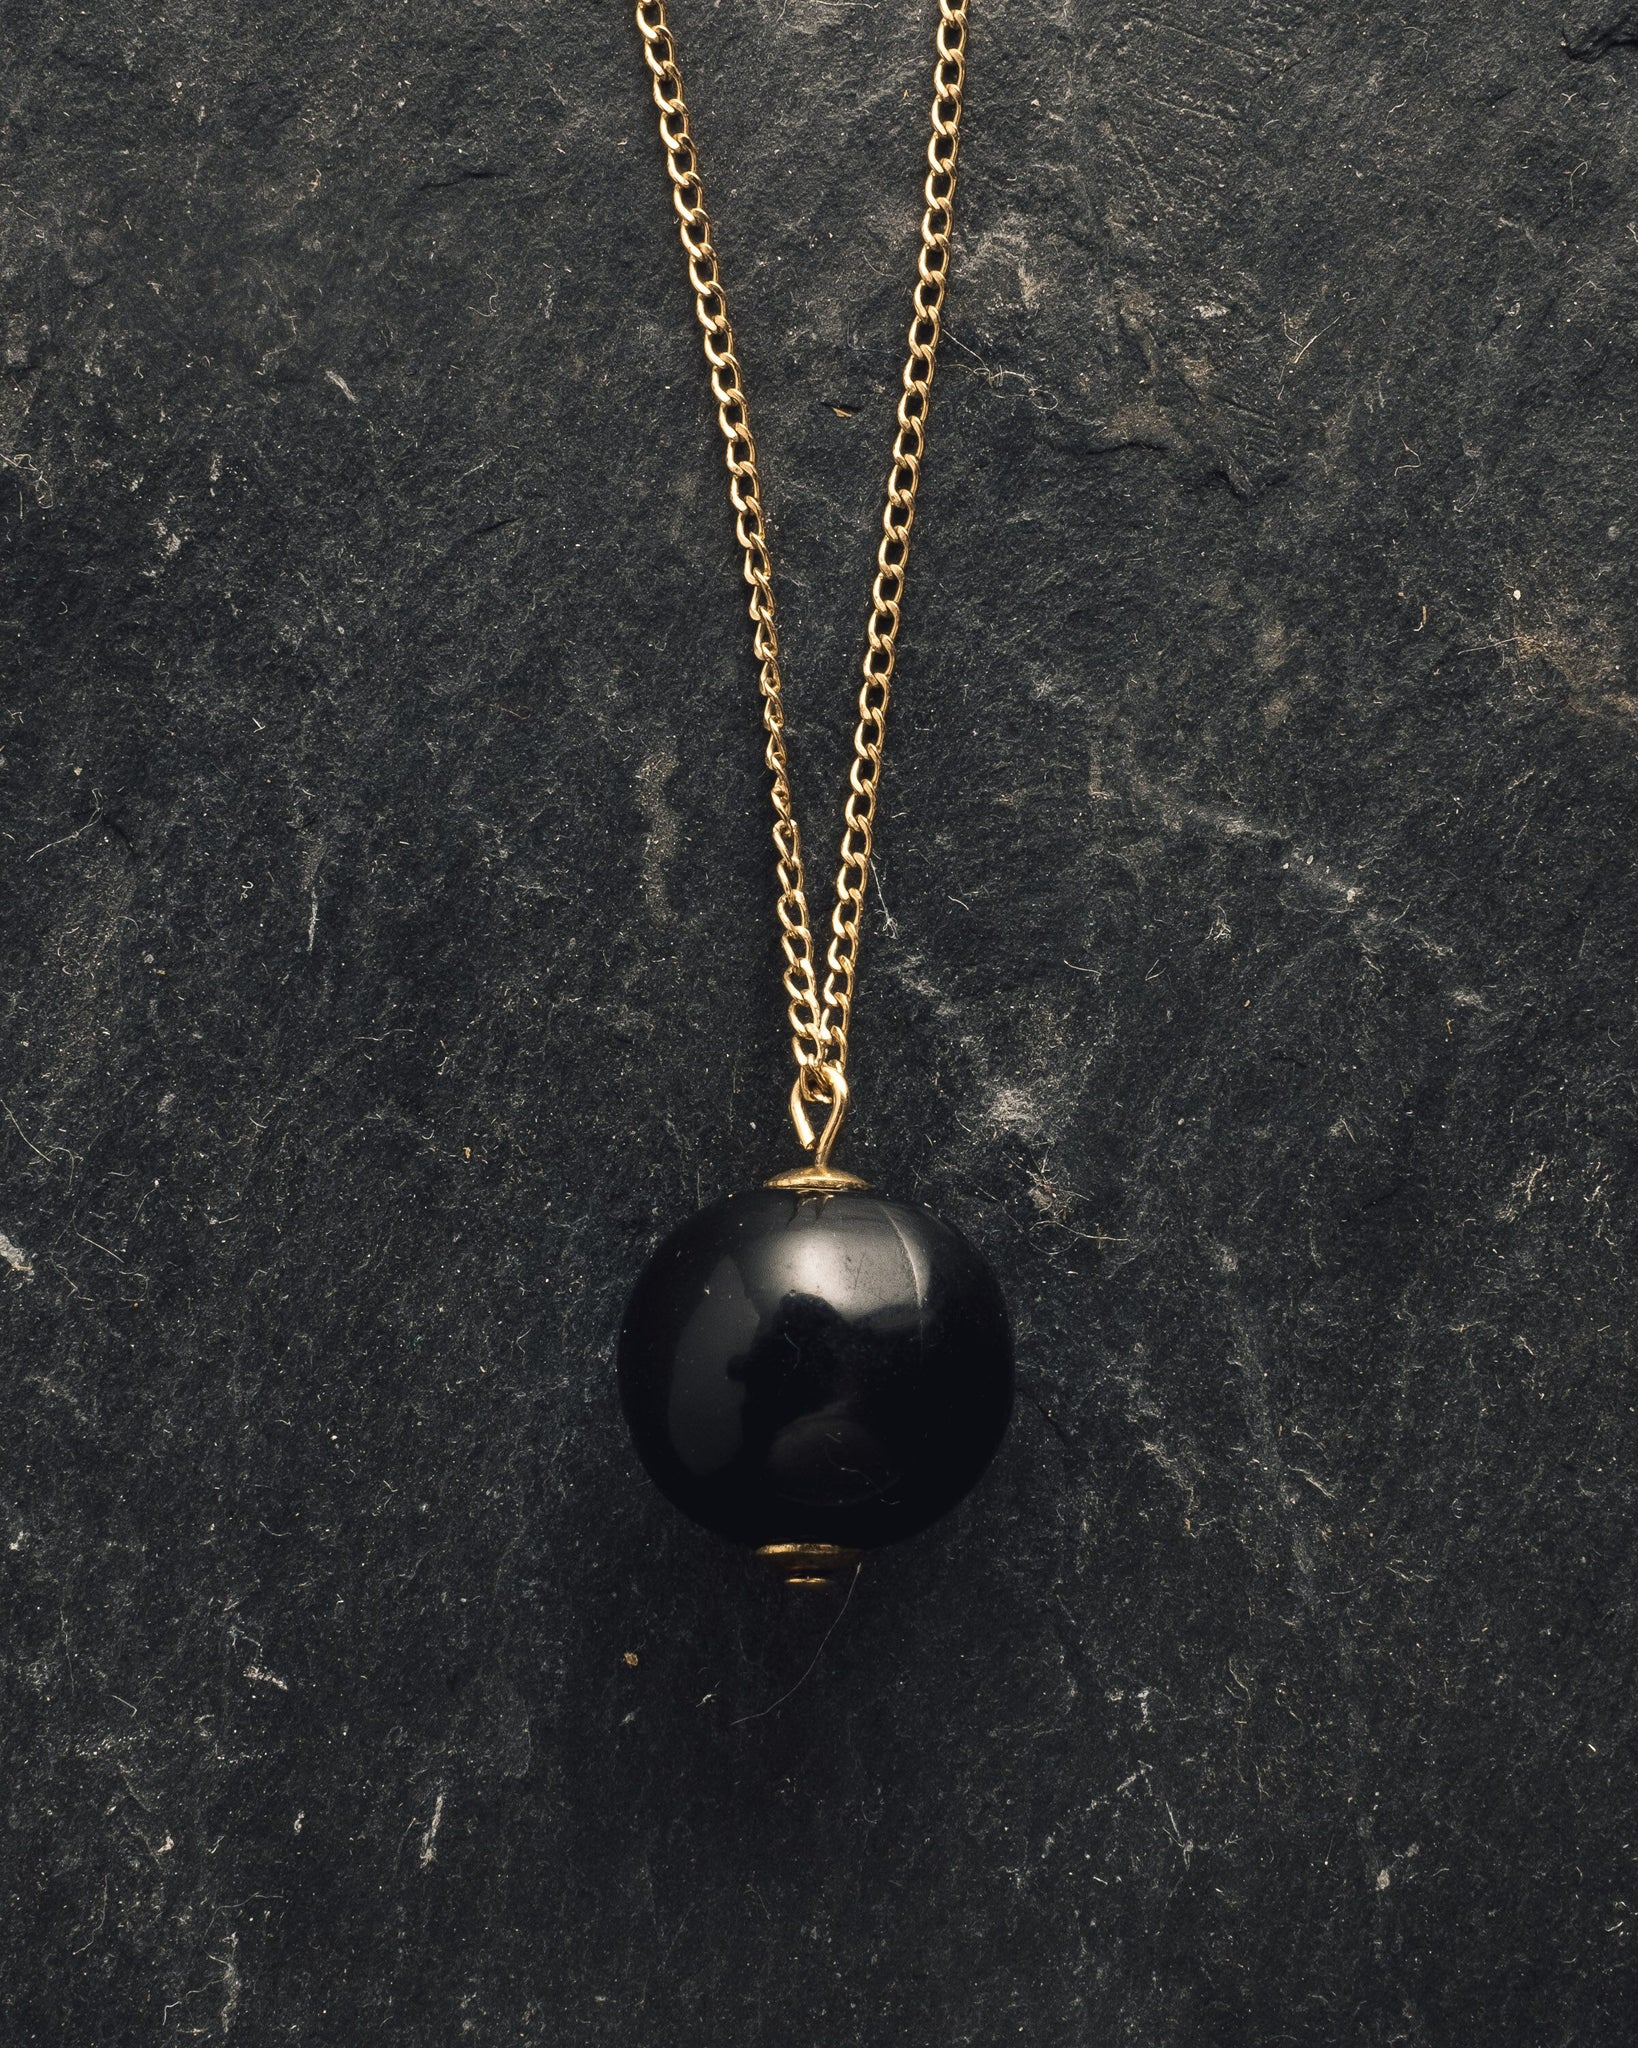 Rou Jewelry Black Moon Necklace